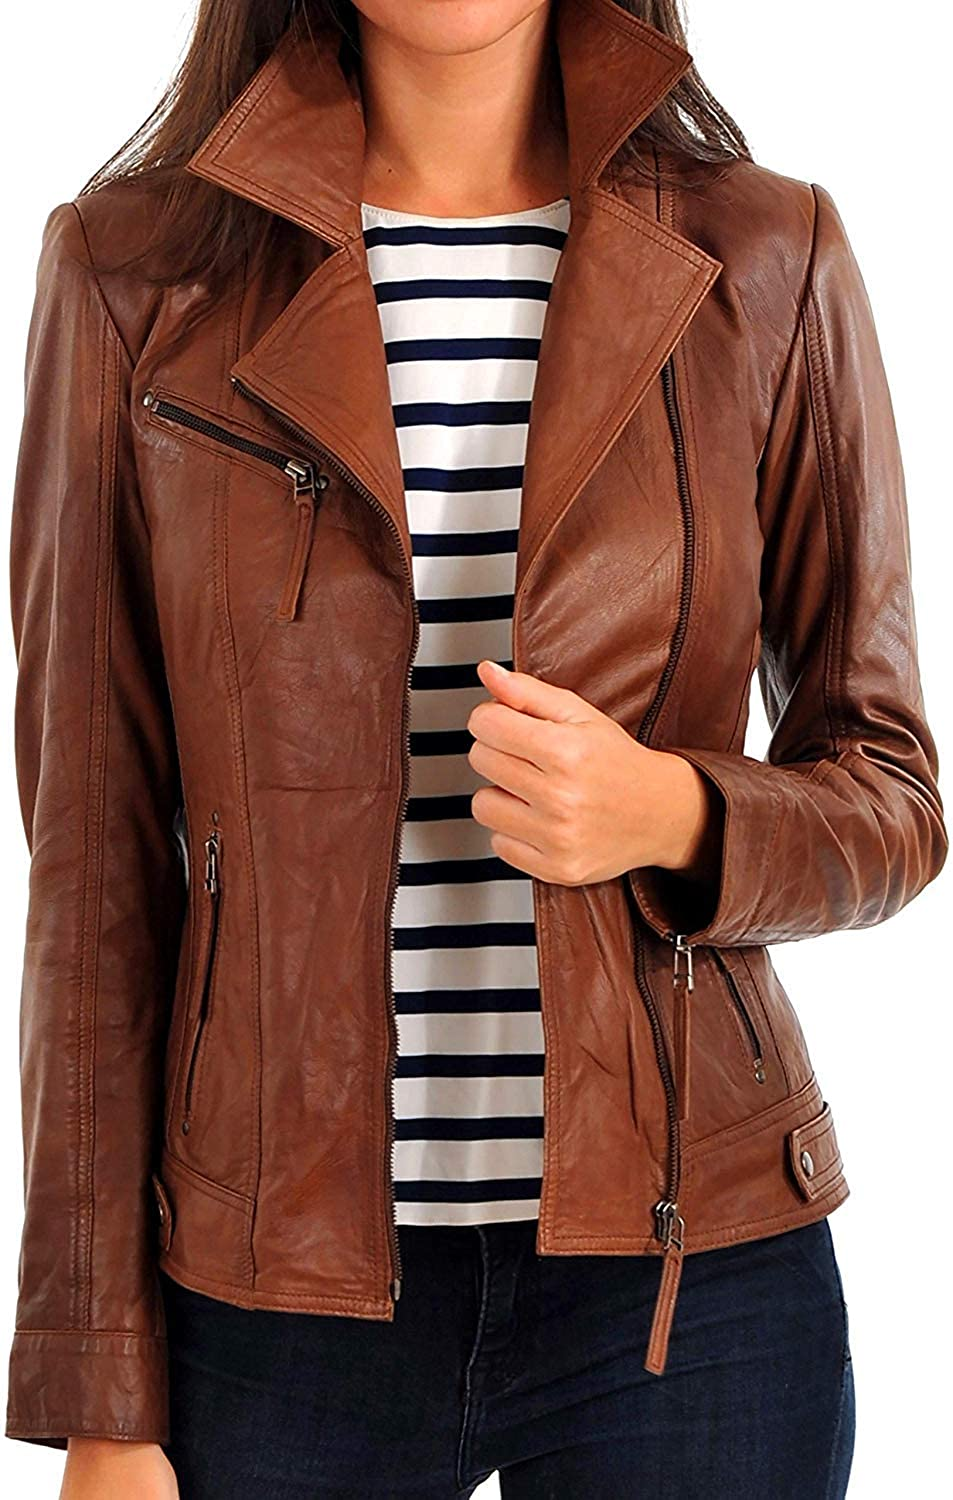 Brown45fc DOLLY LAMB 100% Leather Jacket for Women  Slim Fit & Quilted  Moto, Bomber, Biker Winter Casual Wear